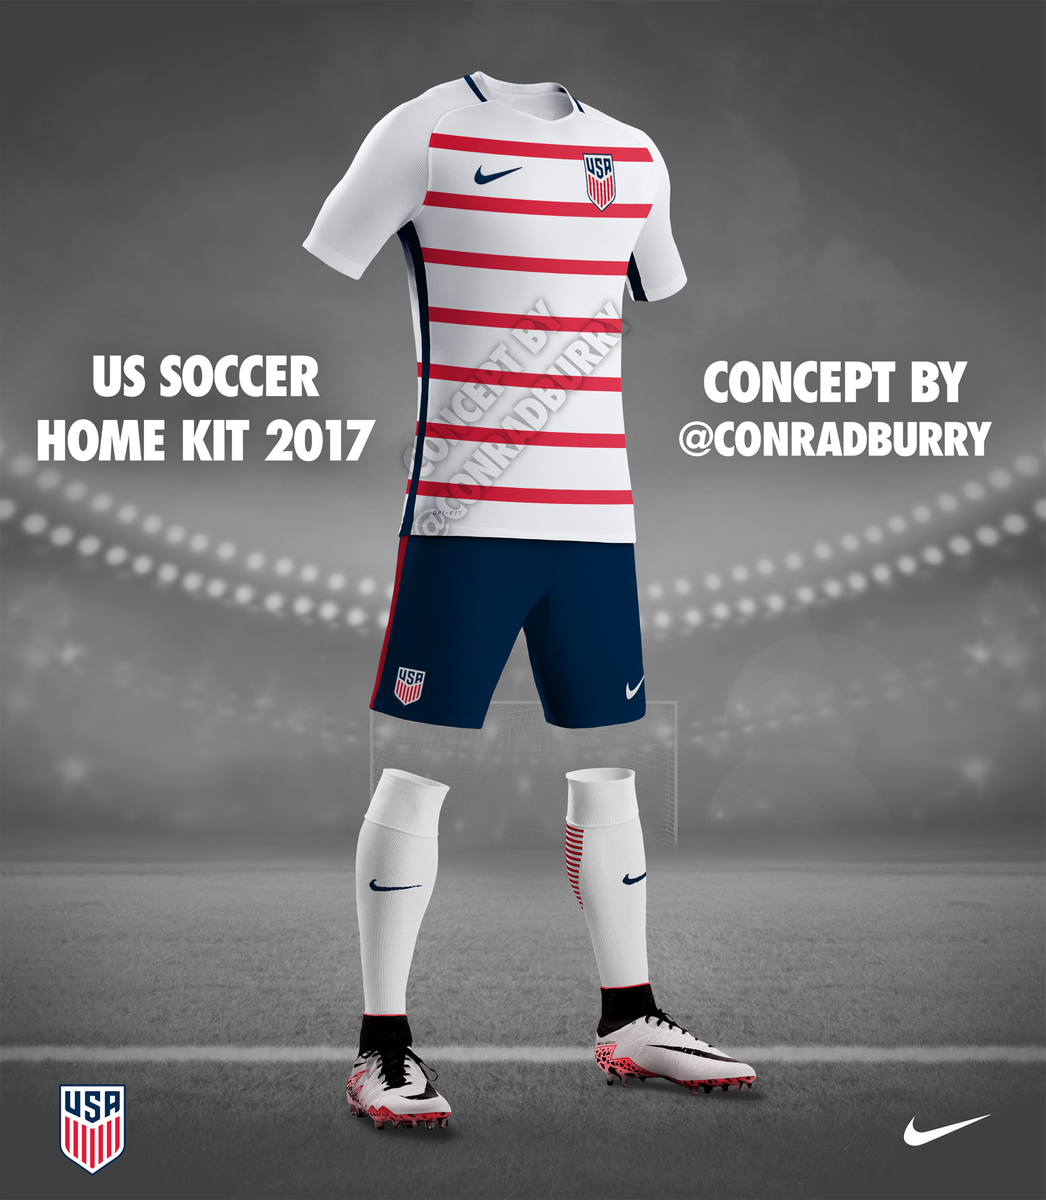 d797daa345a The unexpected popularity of my USA 3rd kit concept inspired me to tackle  home   away concepts using the current Nike template.  Improvement pic.twitter.com  ...